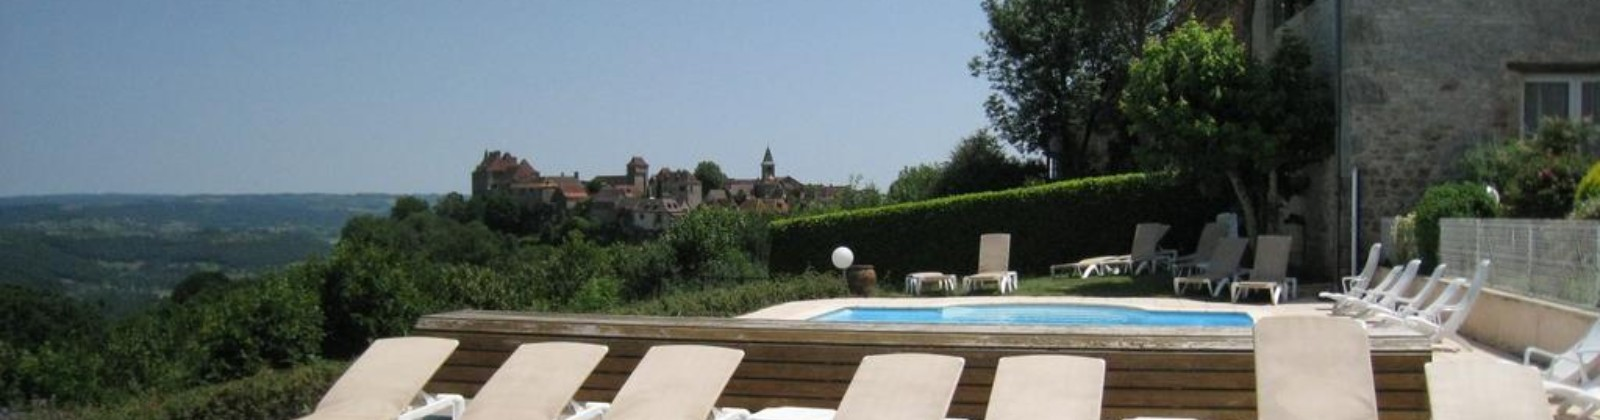 le relais de castelnau olevene hotel restaurant meeting booking conference convention